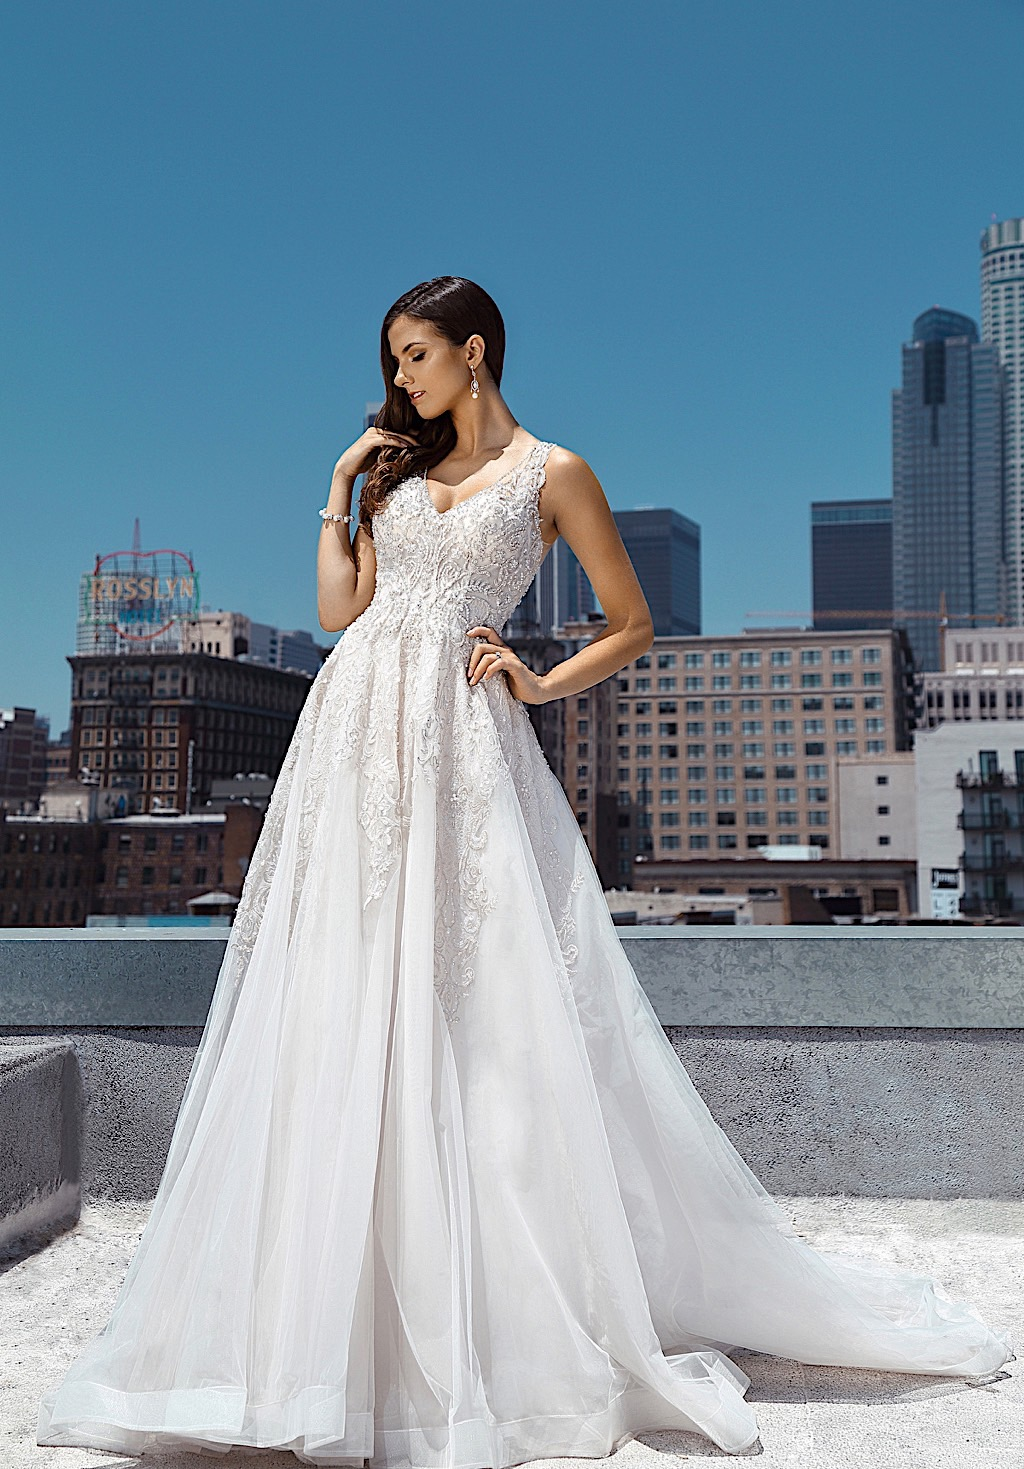 Wedding Gowns Gold Coast | Bridal Dresses and Gowns in Brisbane